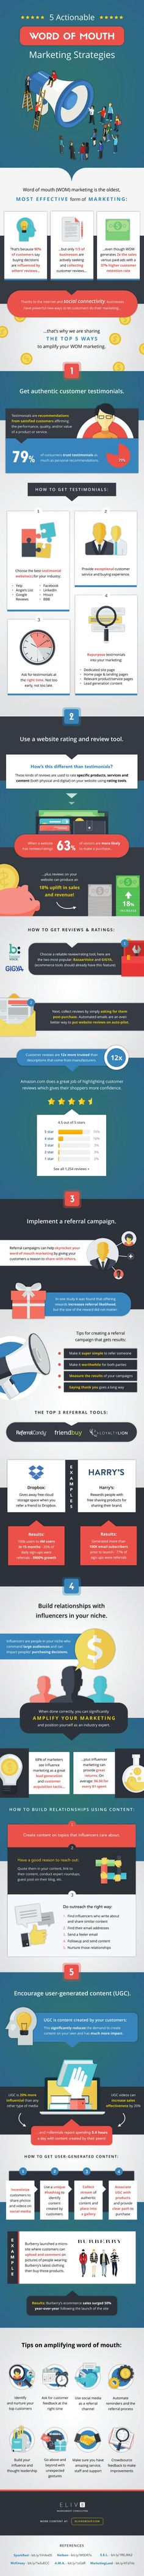 5 actionable word of mouth marketing strategies #infographic